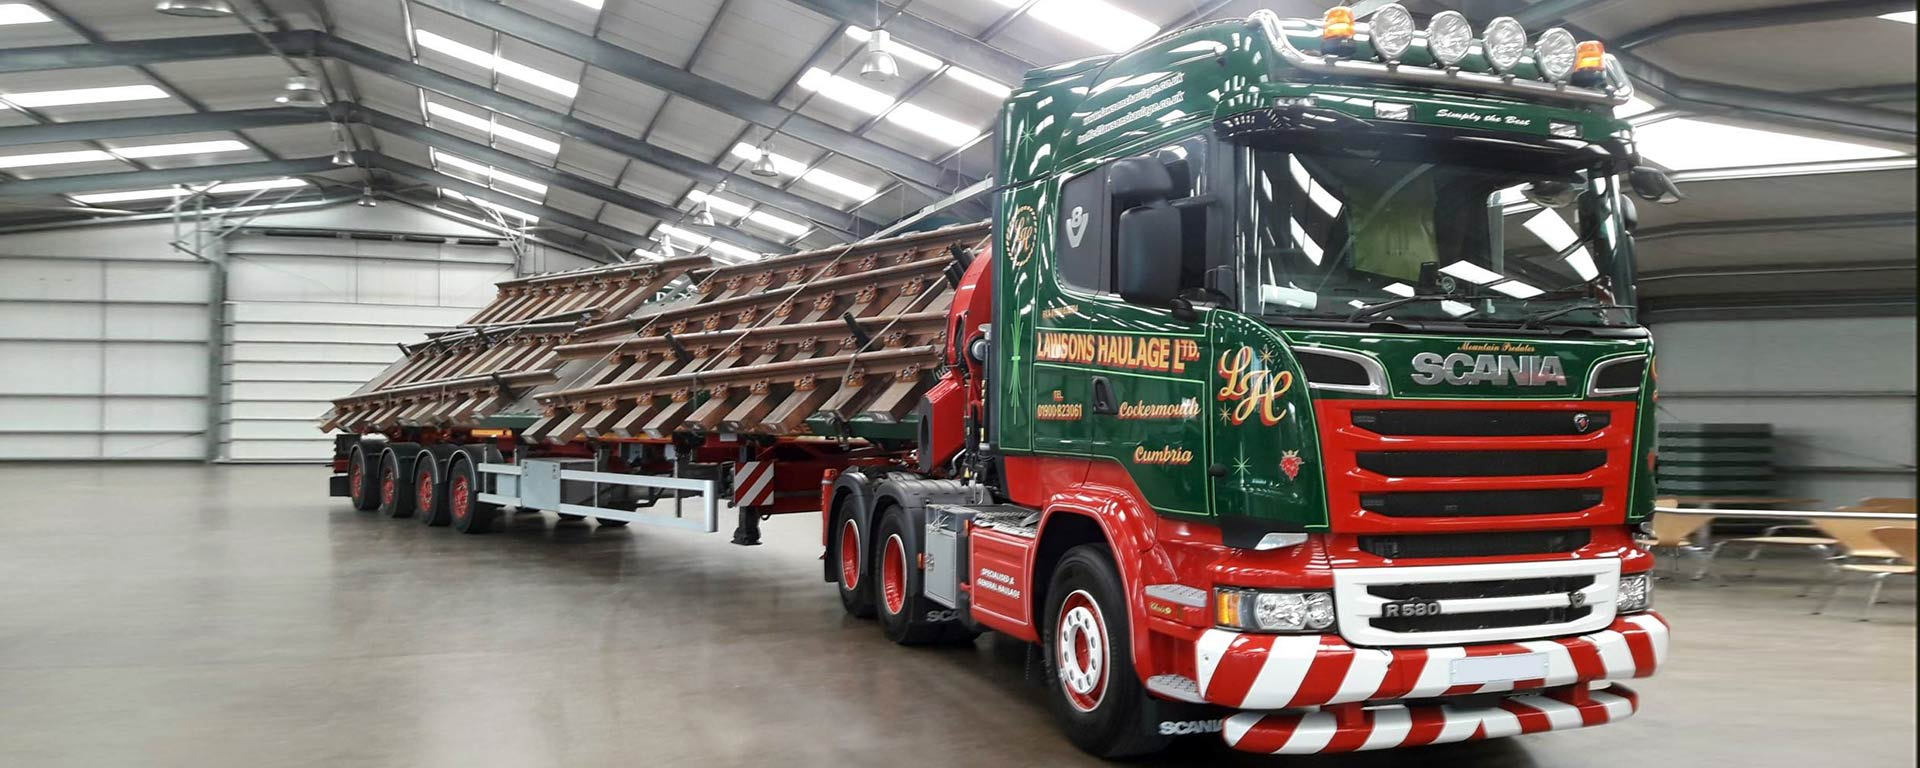 Lawsons Haulage Ltd - Tilting Trailer